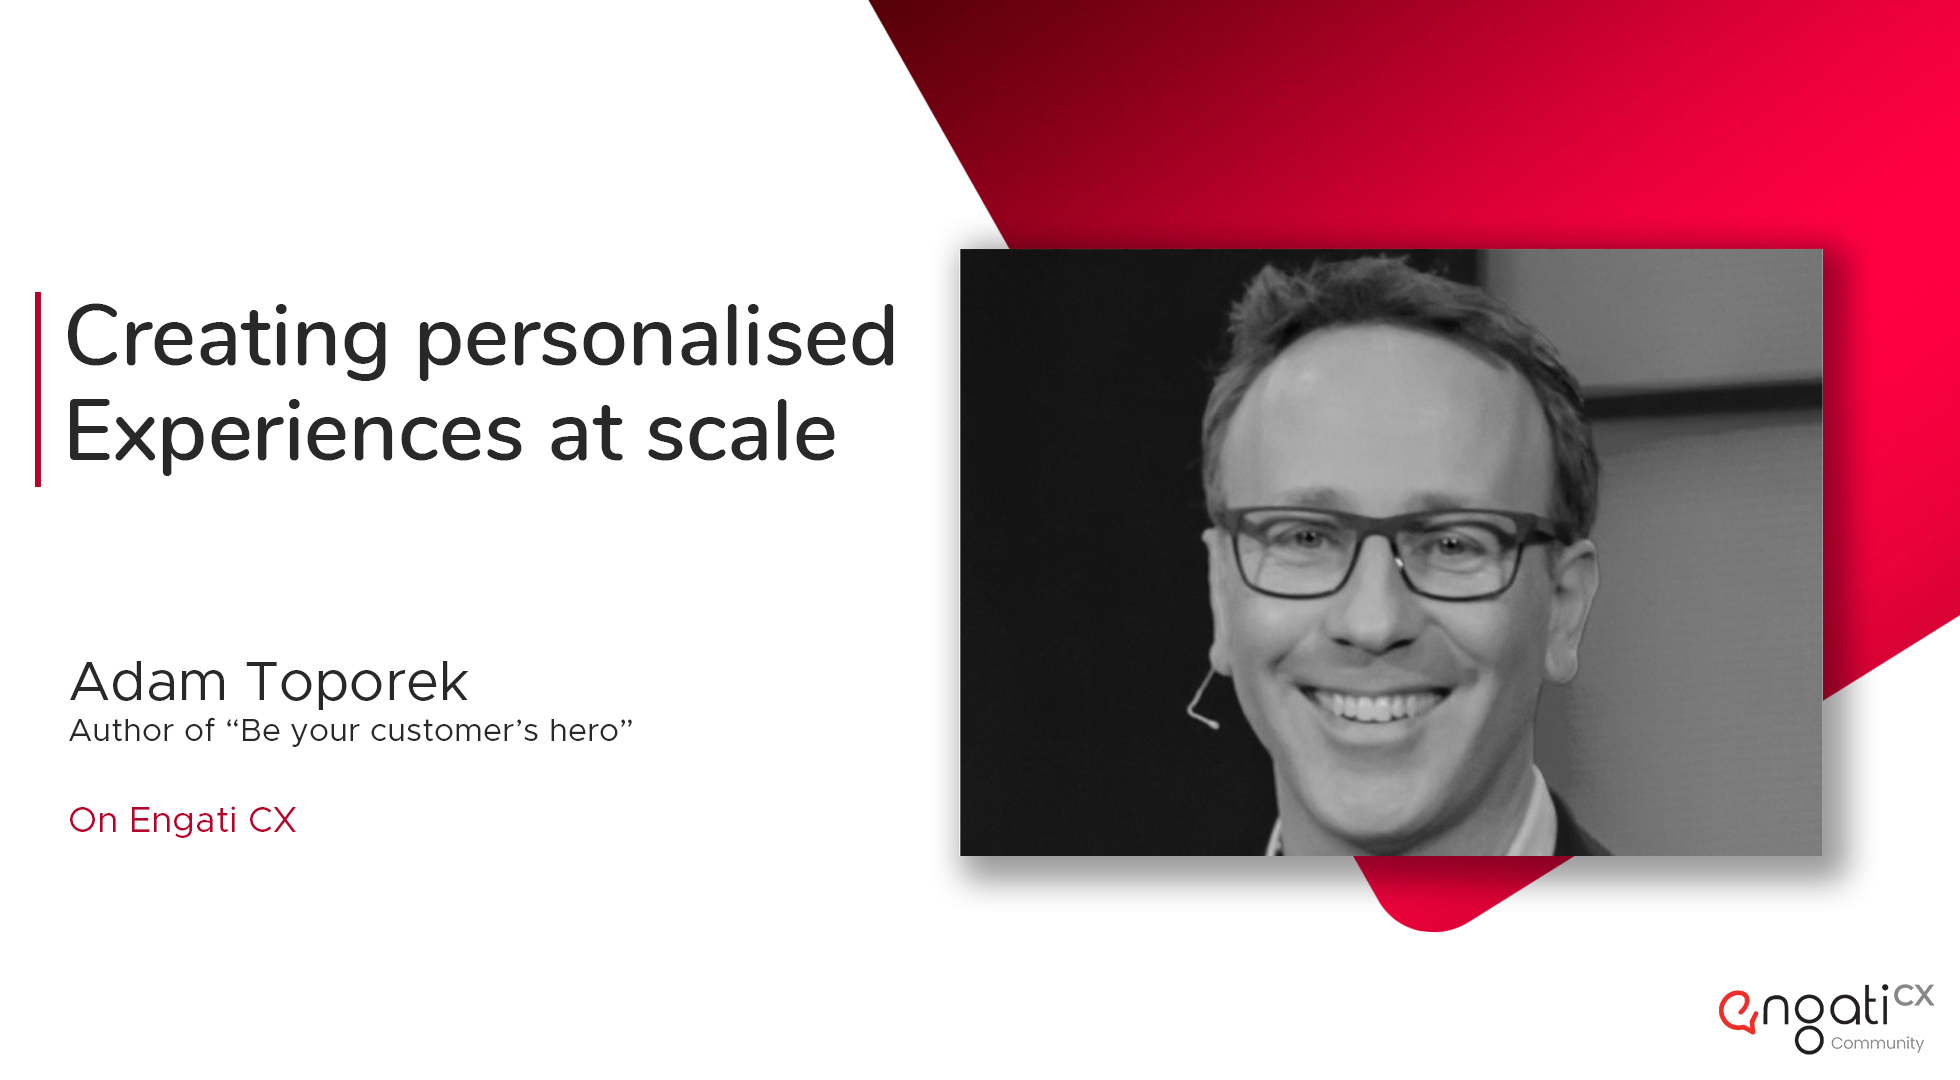 How to create personalized experiences at scale | Adam Toporek | Engati CX